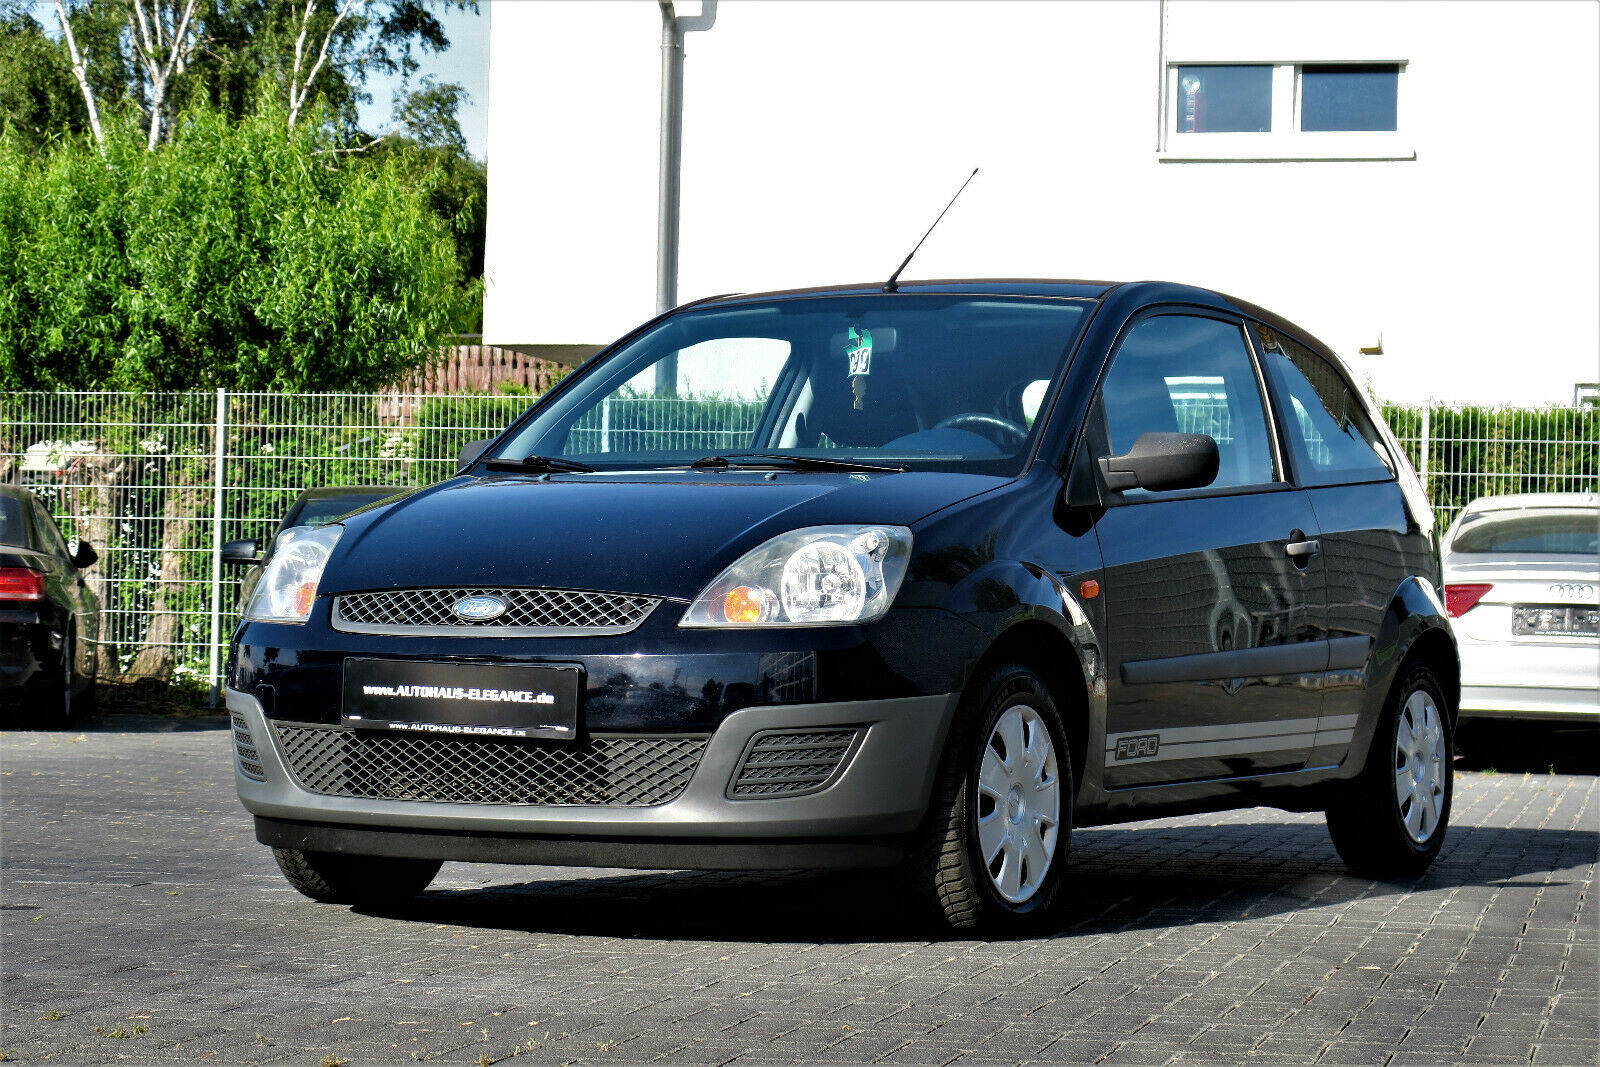 FORD Fiesta 1.3 Ambiente**RADIO/CD**2-HAND**